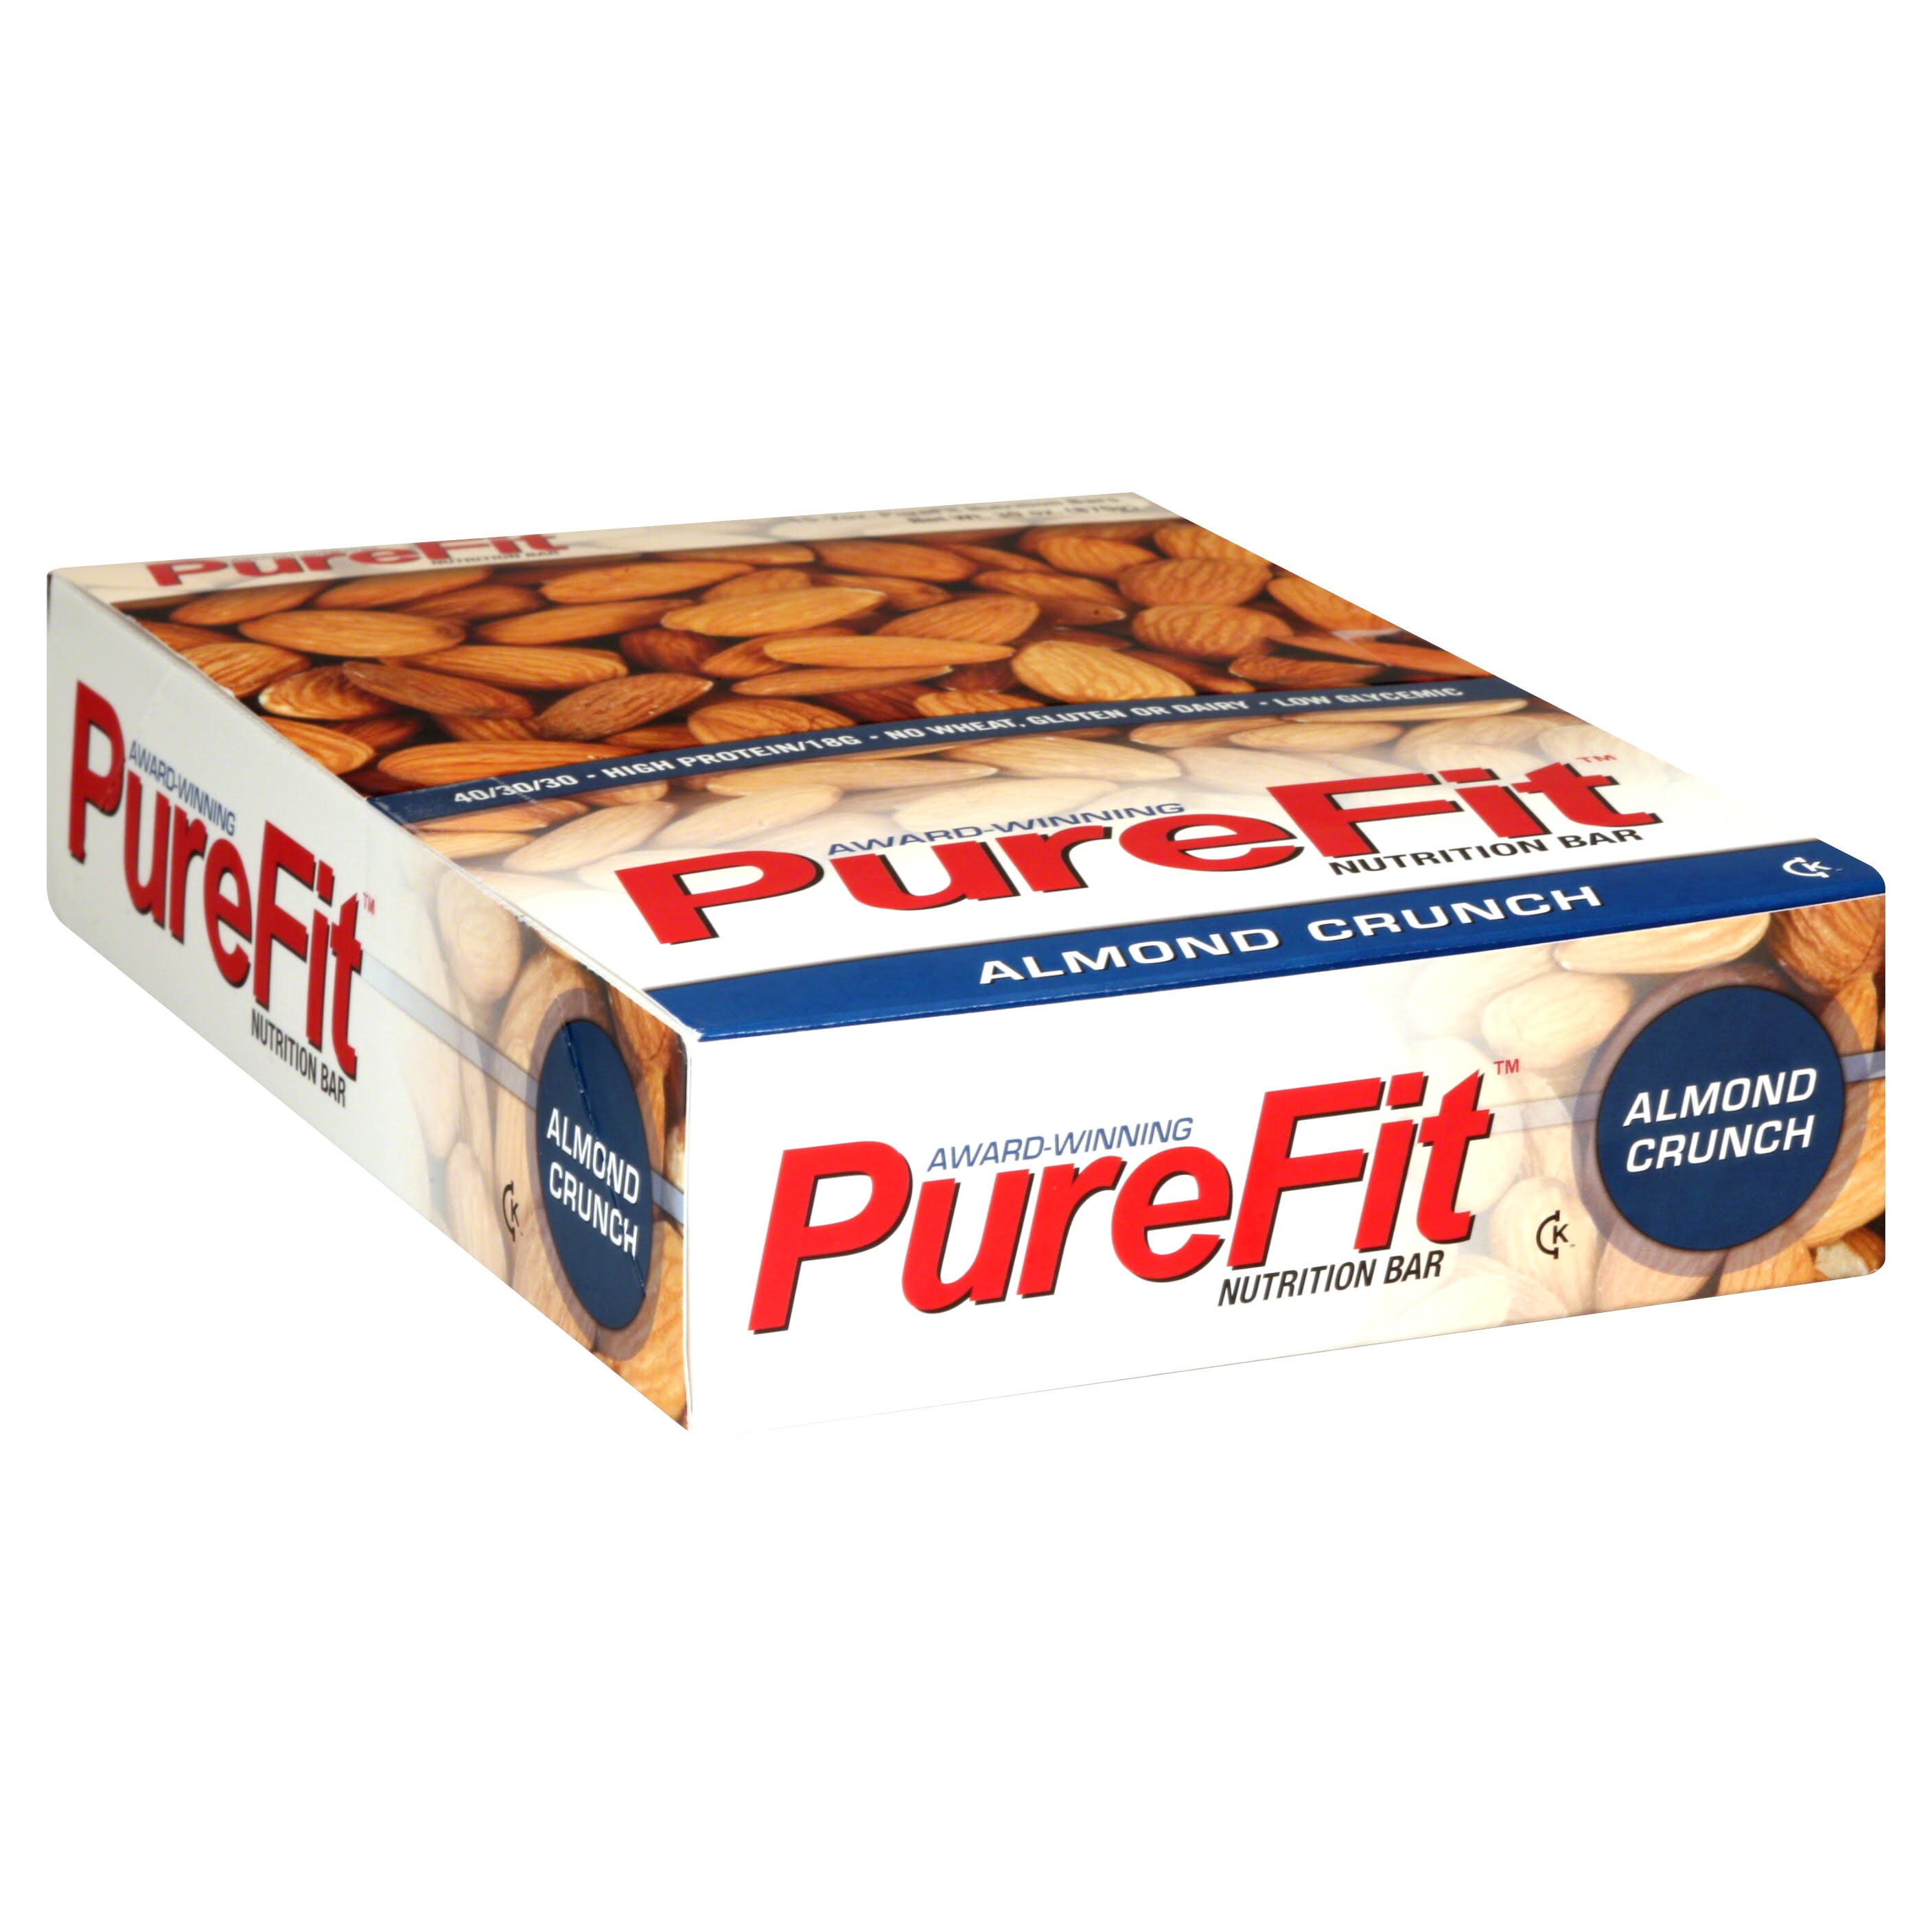 PureFit Gluten-Free Nutrition Bars - Almond Crunch, 2oz, 15pcs